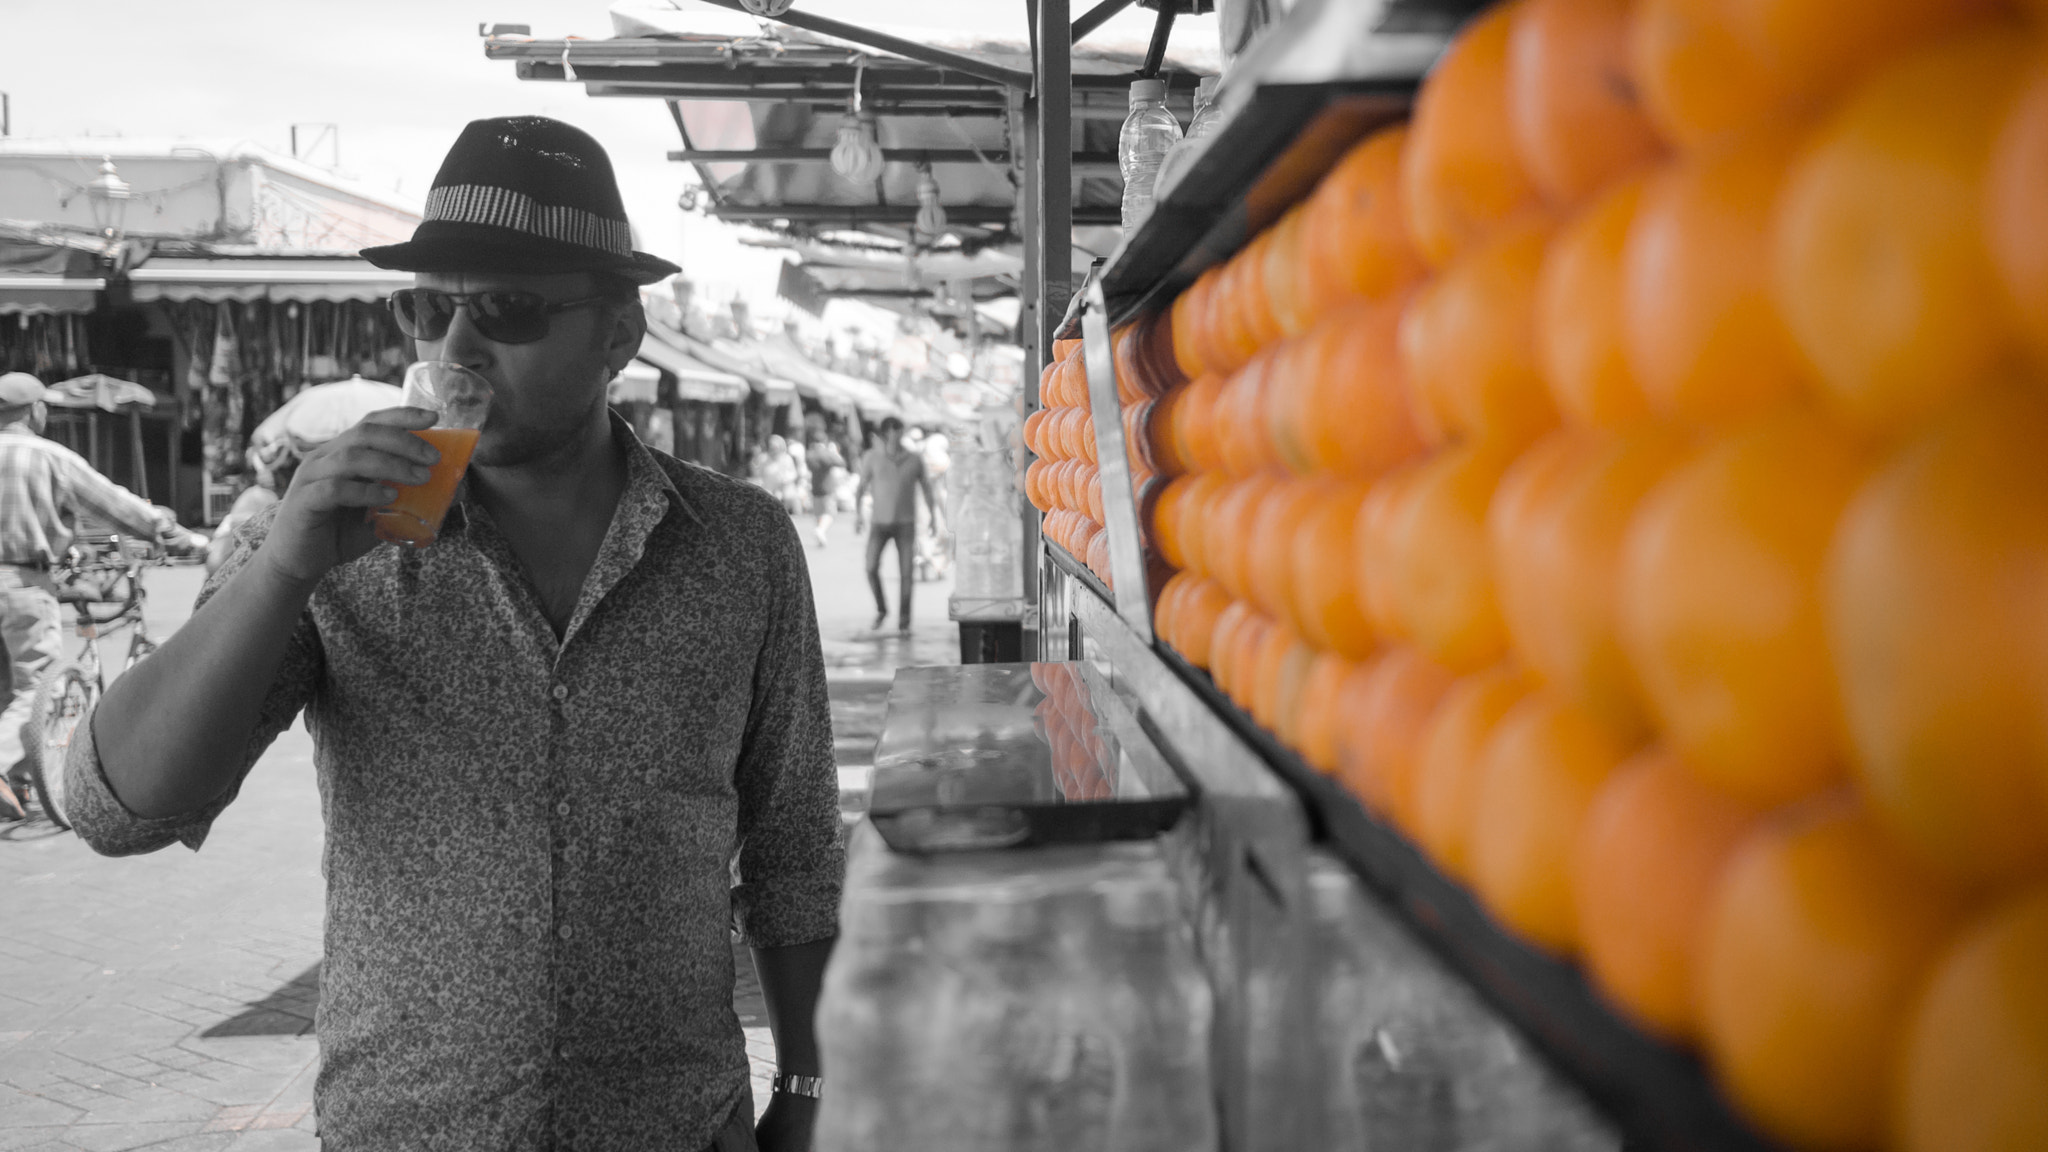 Photograph Marrakech - Orange Juice by Amine Fassi on 500px